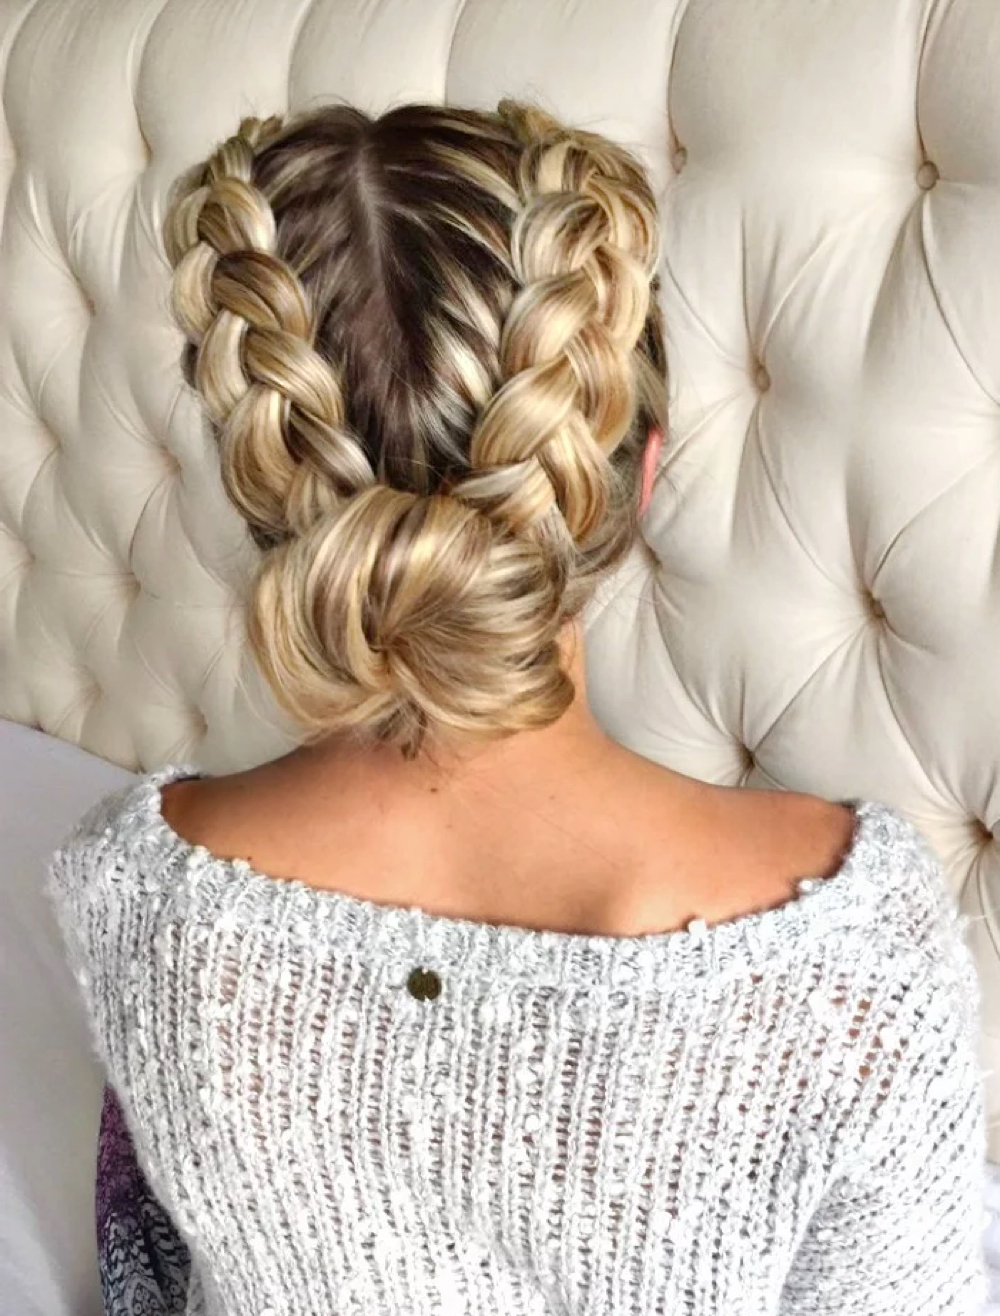 2020 Braids And Buns Hairstyles With 29 Gorgeous Braided Updo Ideas For (View 8 of 20)